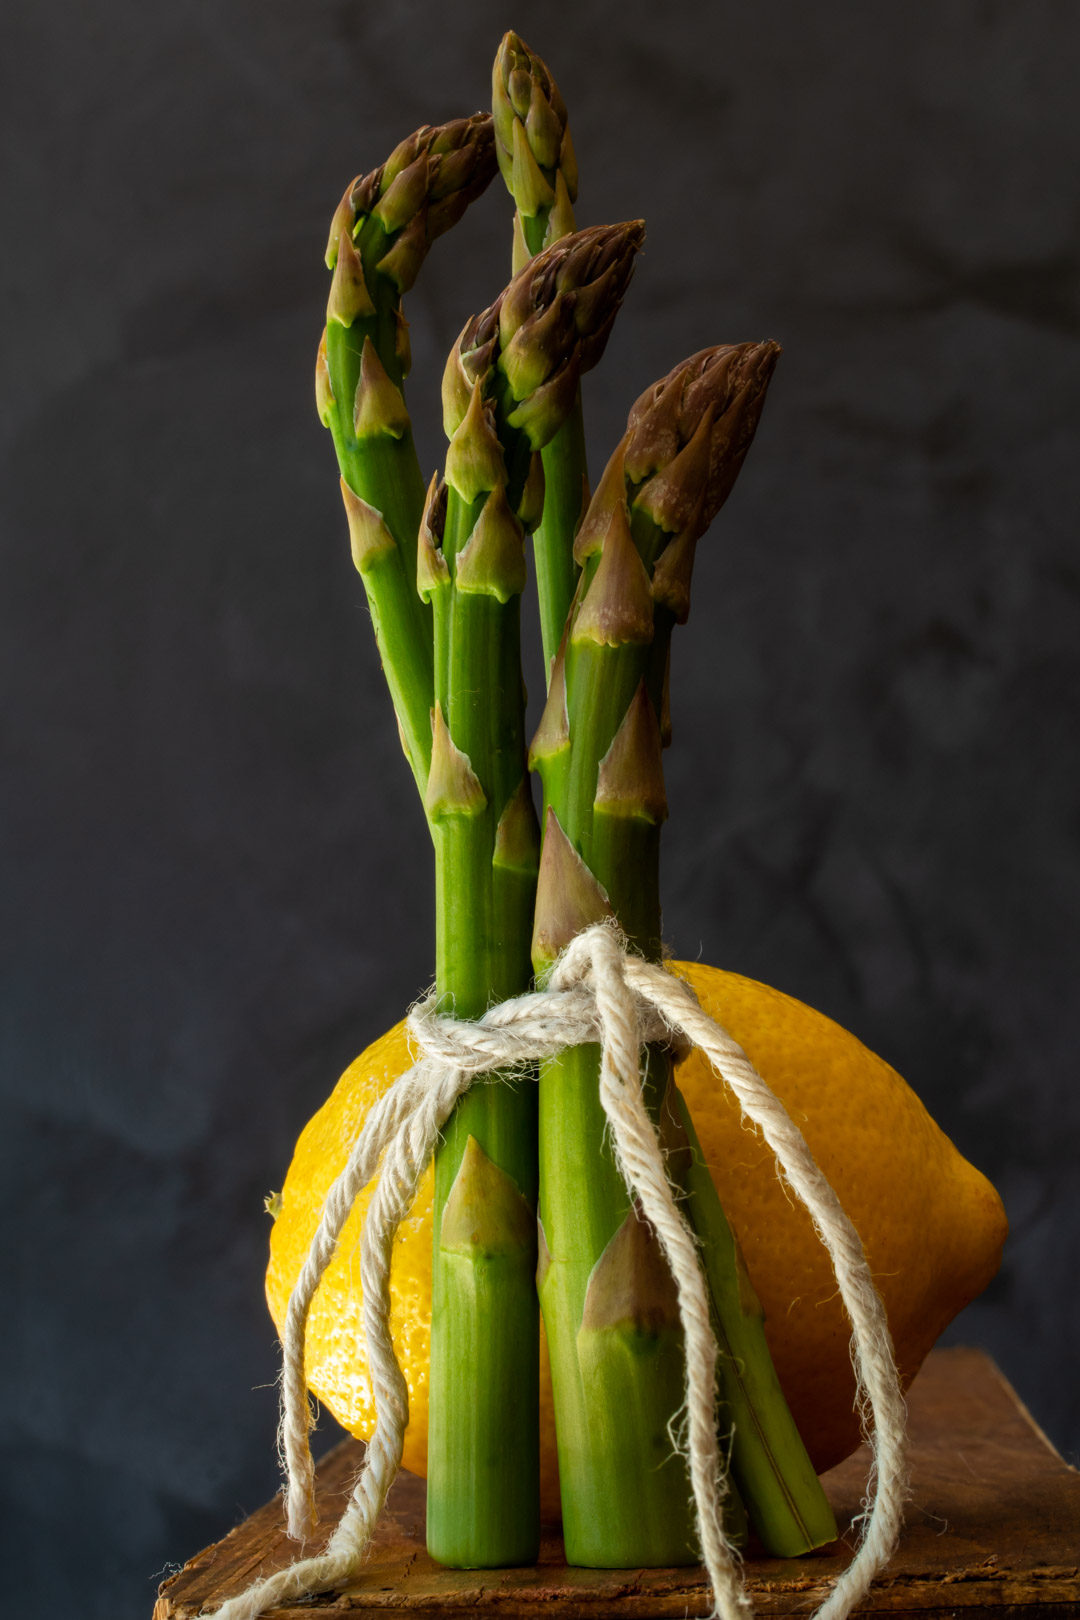 asparagus & lemon tart: asparagus and lemon still life on wooden box